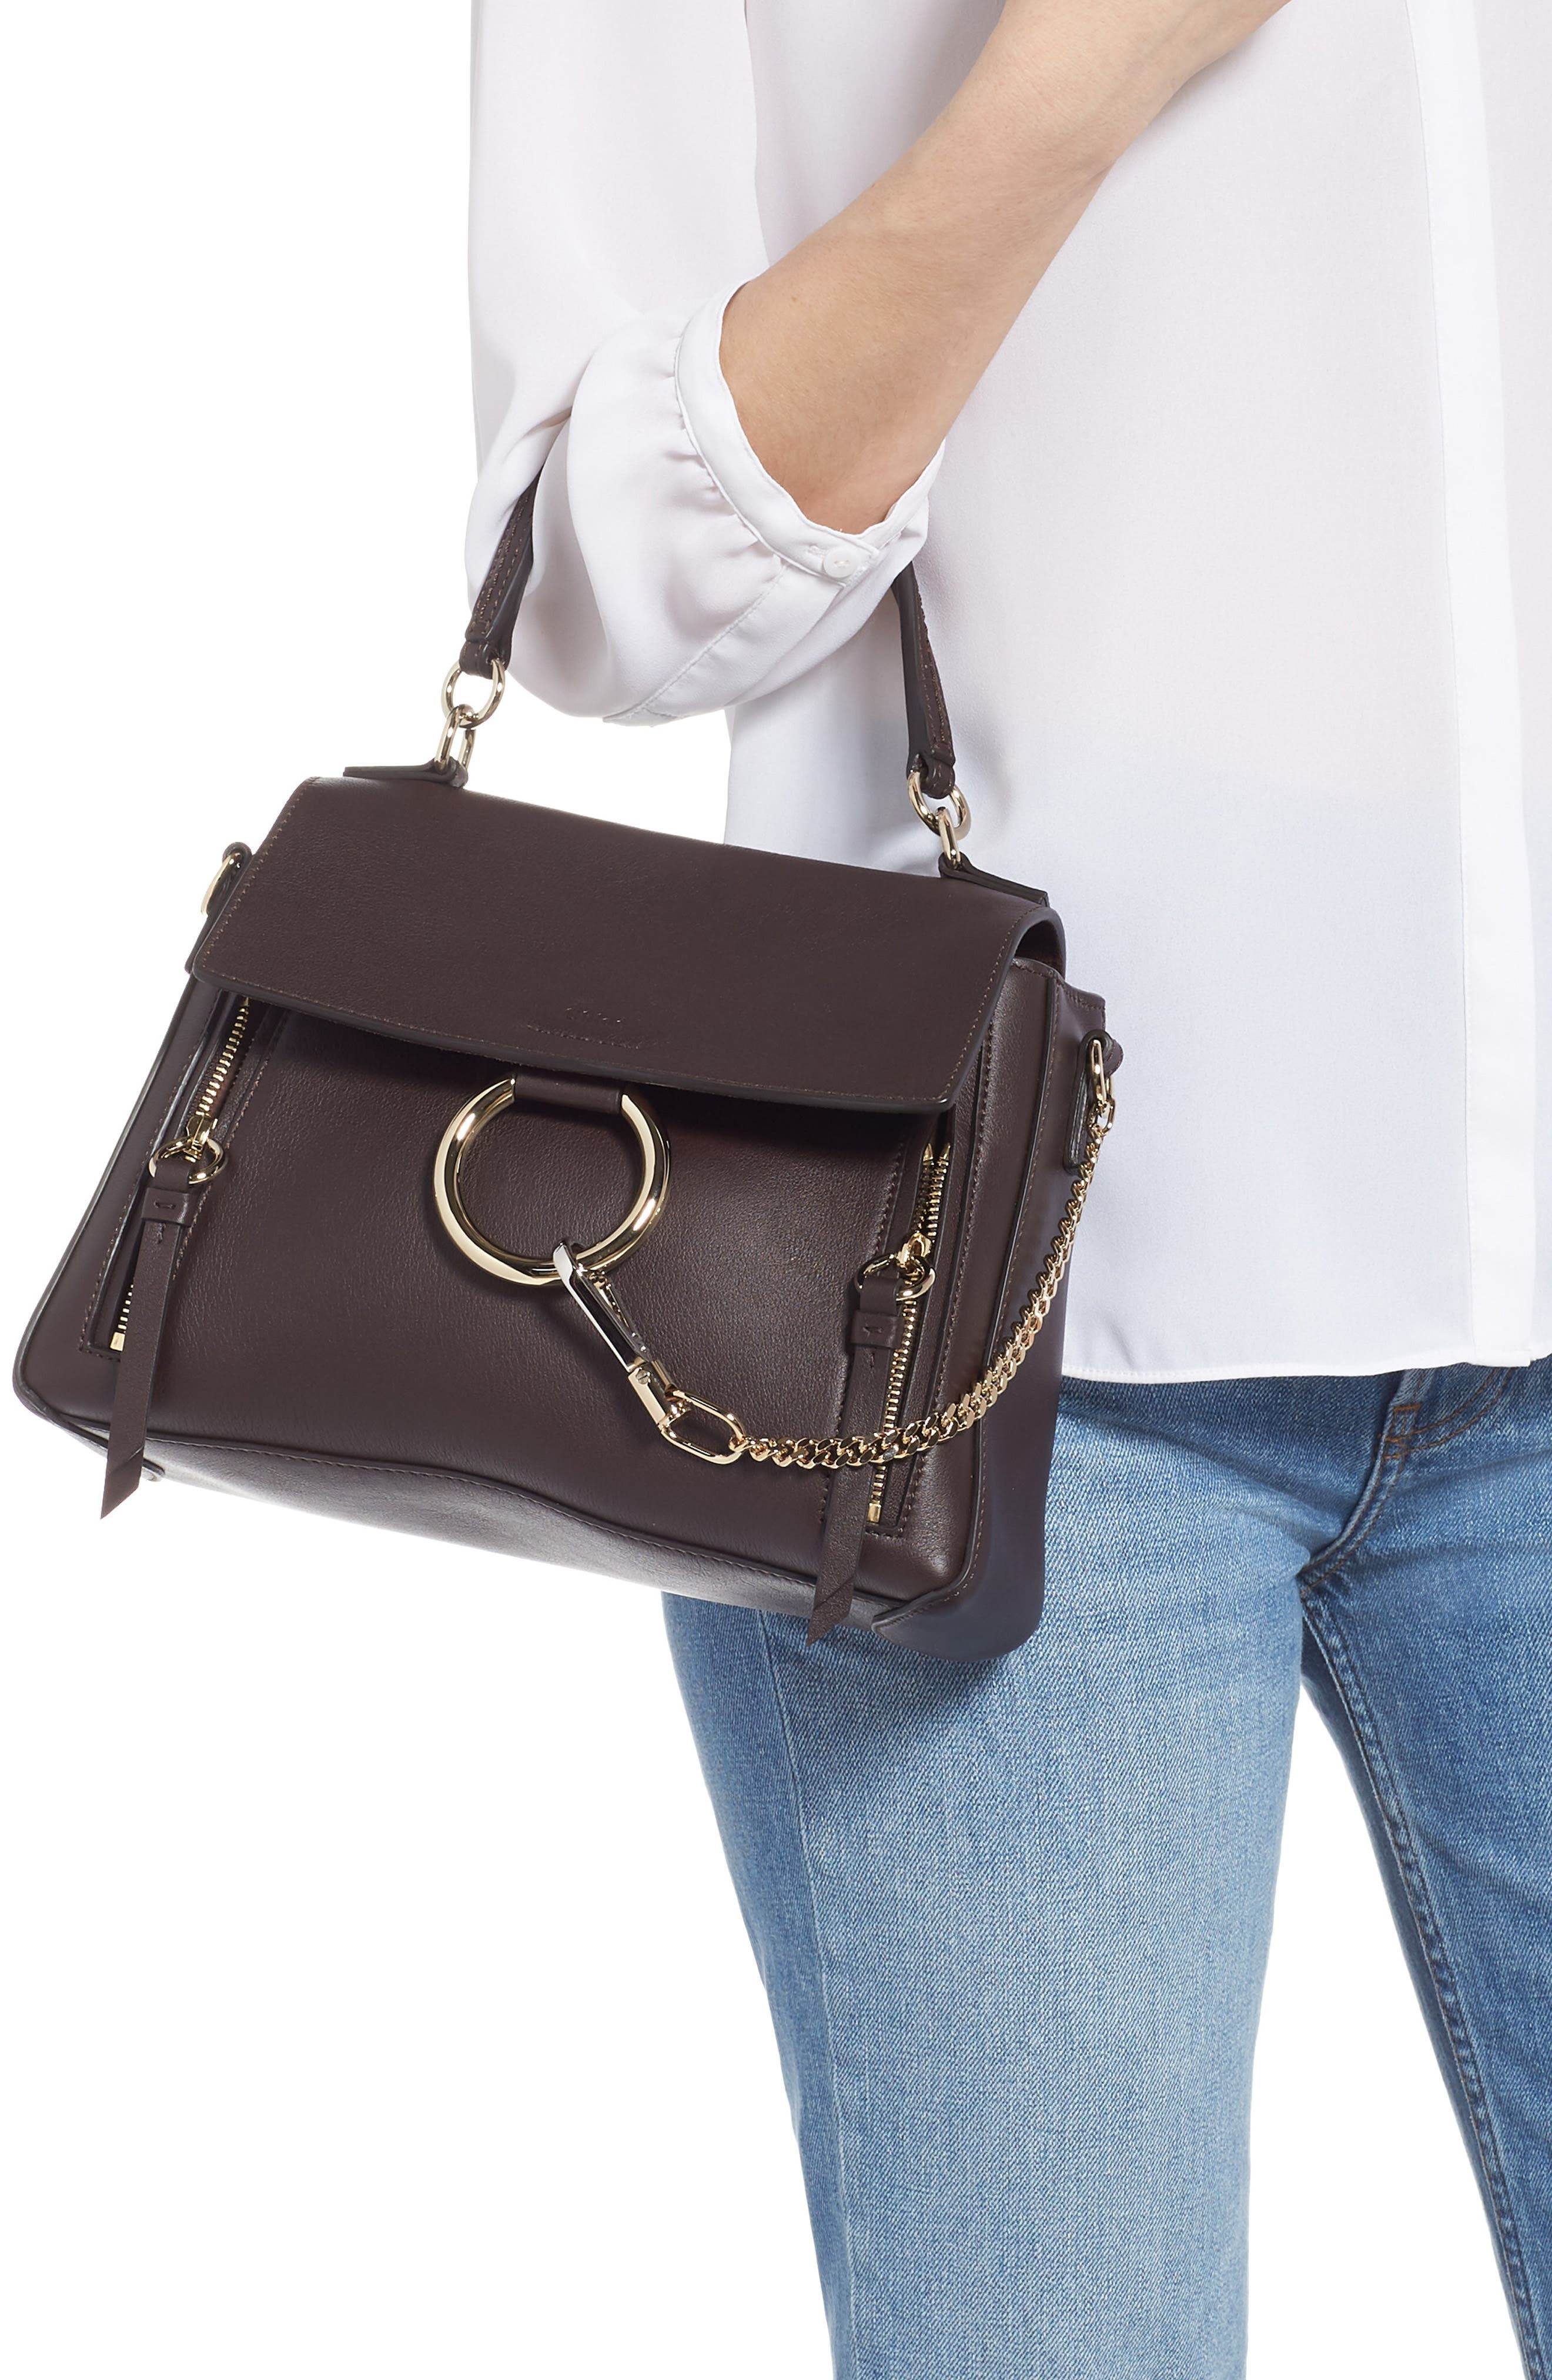 Small Faye Day Leather Shoulder Bag,                             Alternate thumbnail 2, color,                             CARBON BROWN